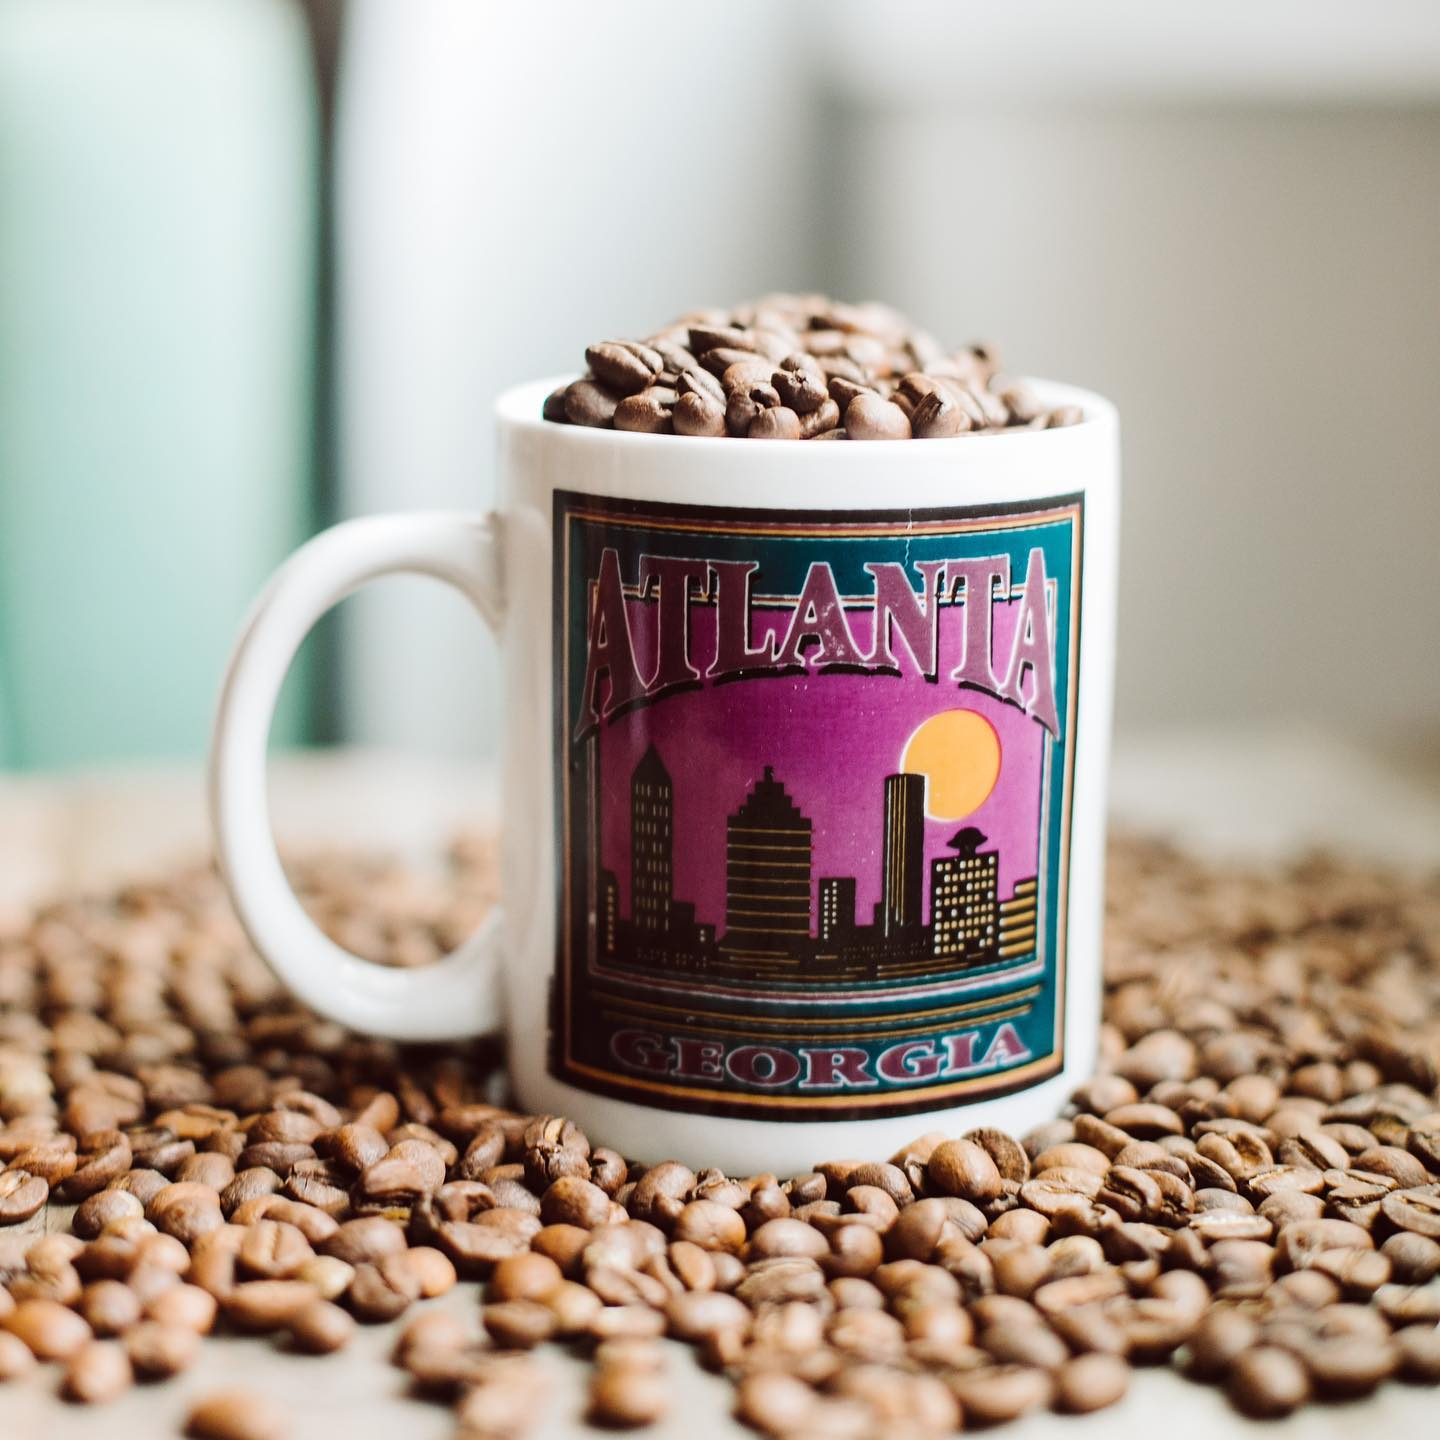 An Atlanta coffee mug filled with coffee beans from Portrait Coffee